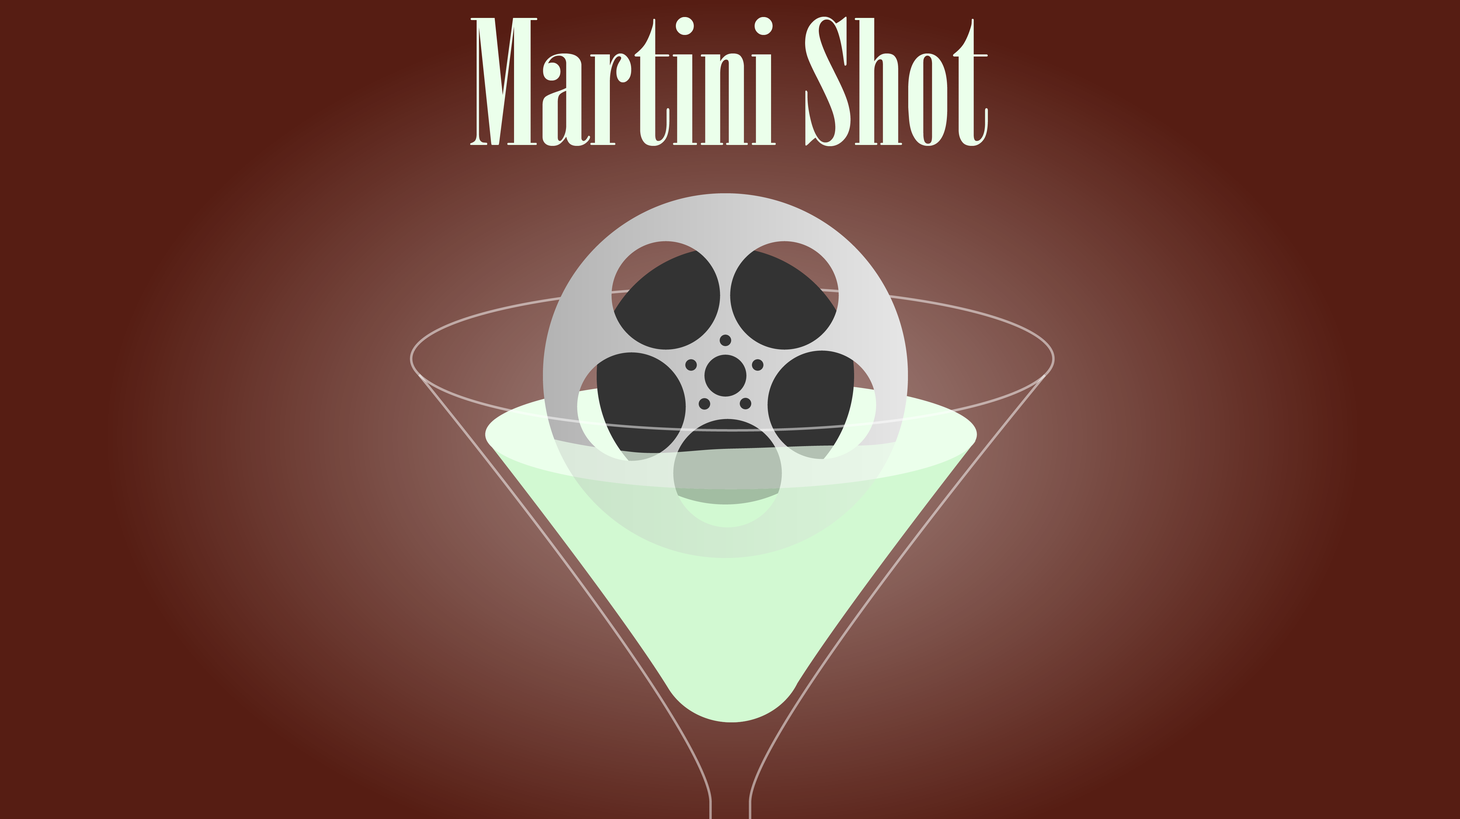 On today's Martini Shot, I start with Game of Thrones. Spoiler Alert: I like it. But by episode 7, I was ready to start with the zombie show.